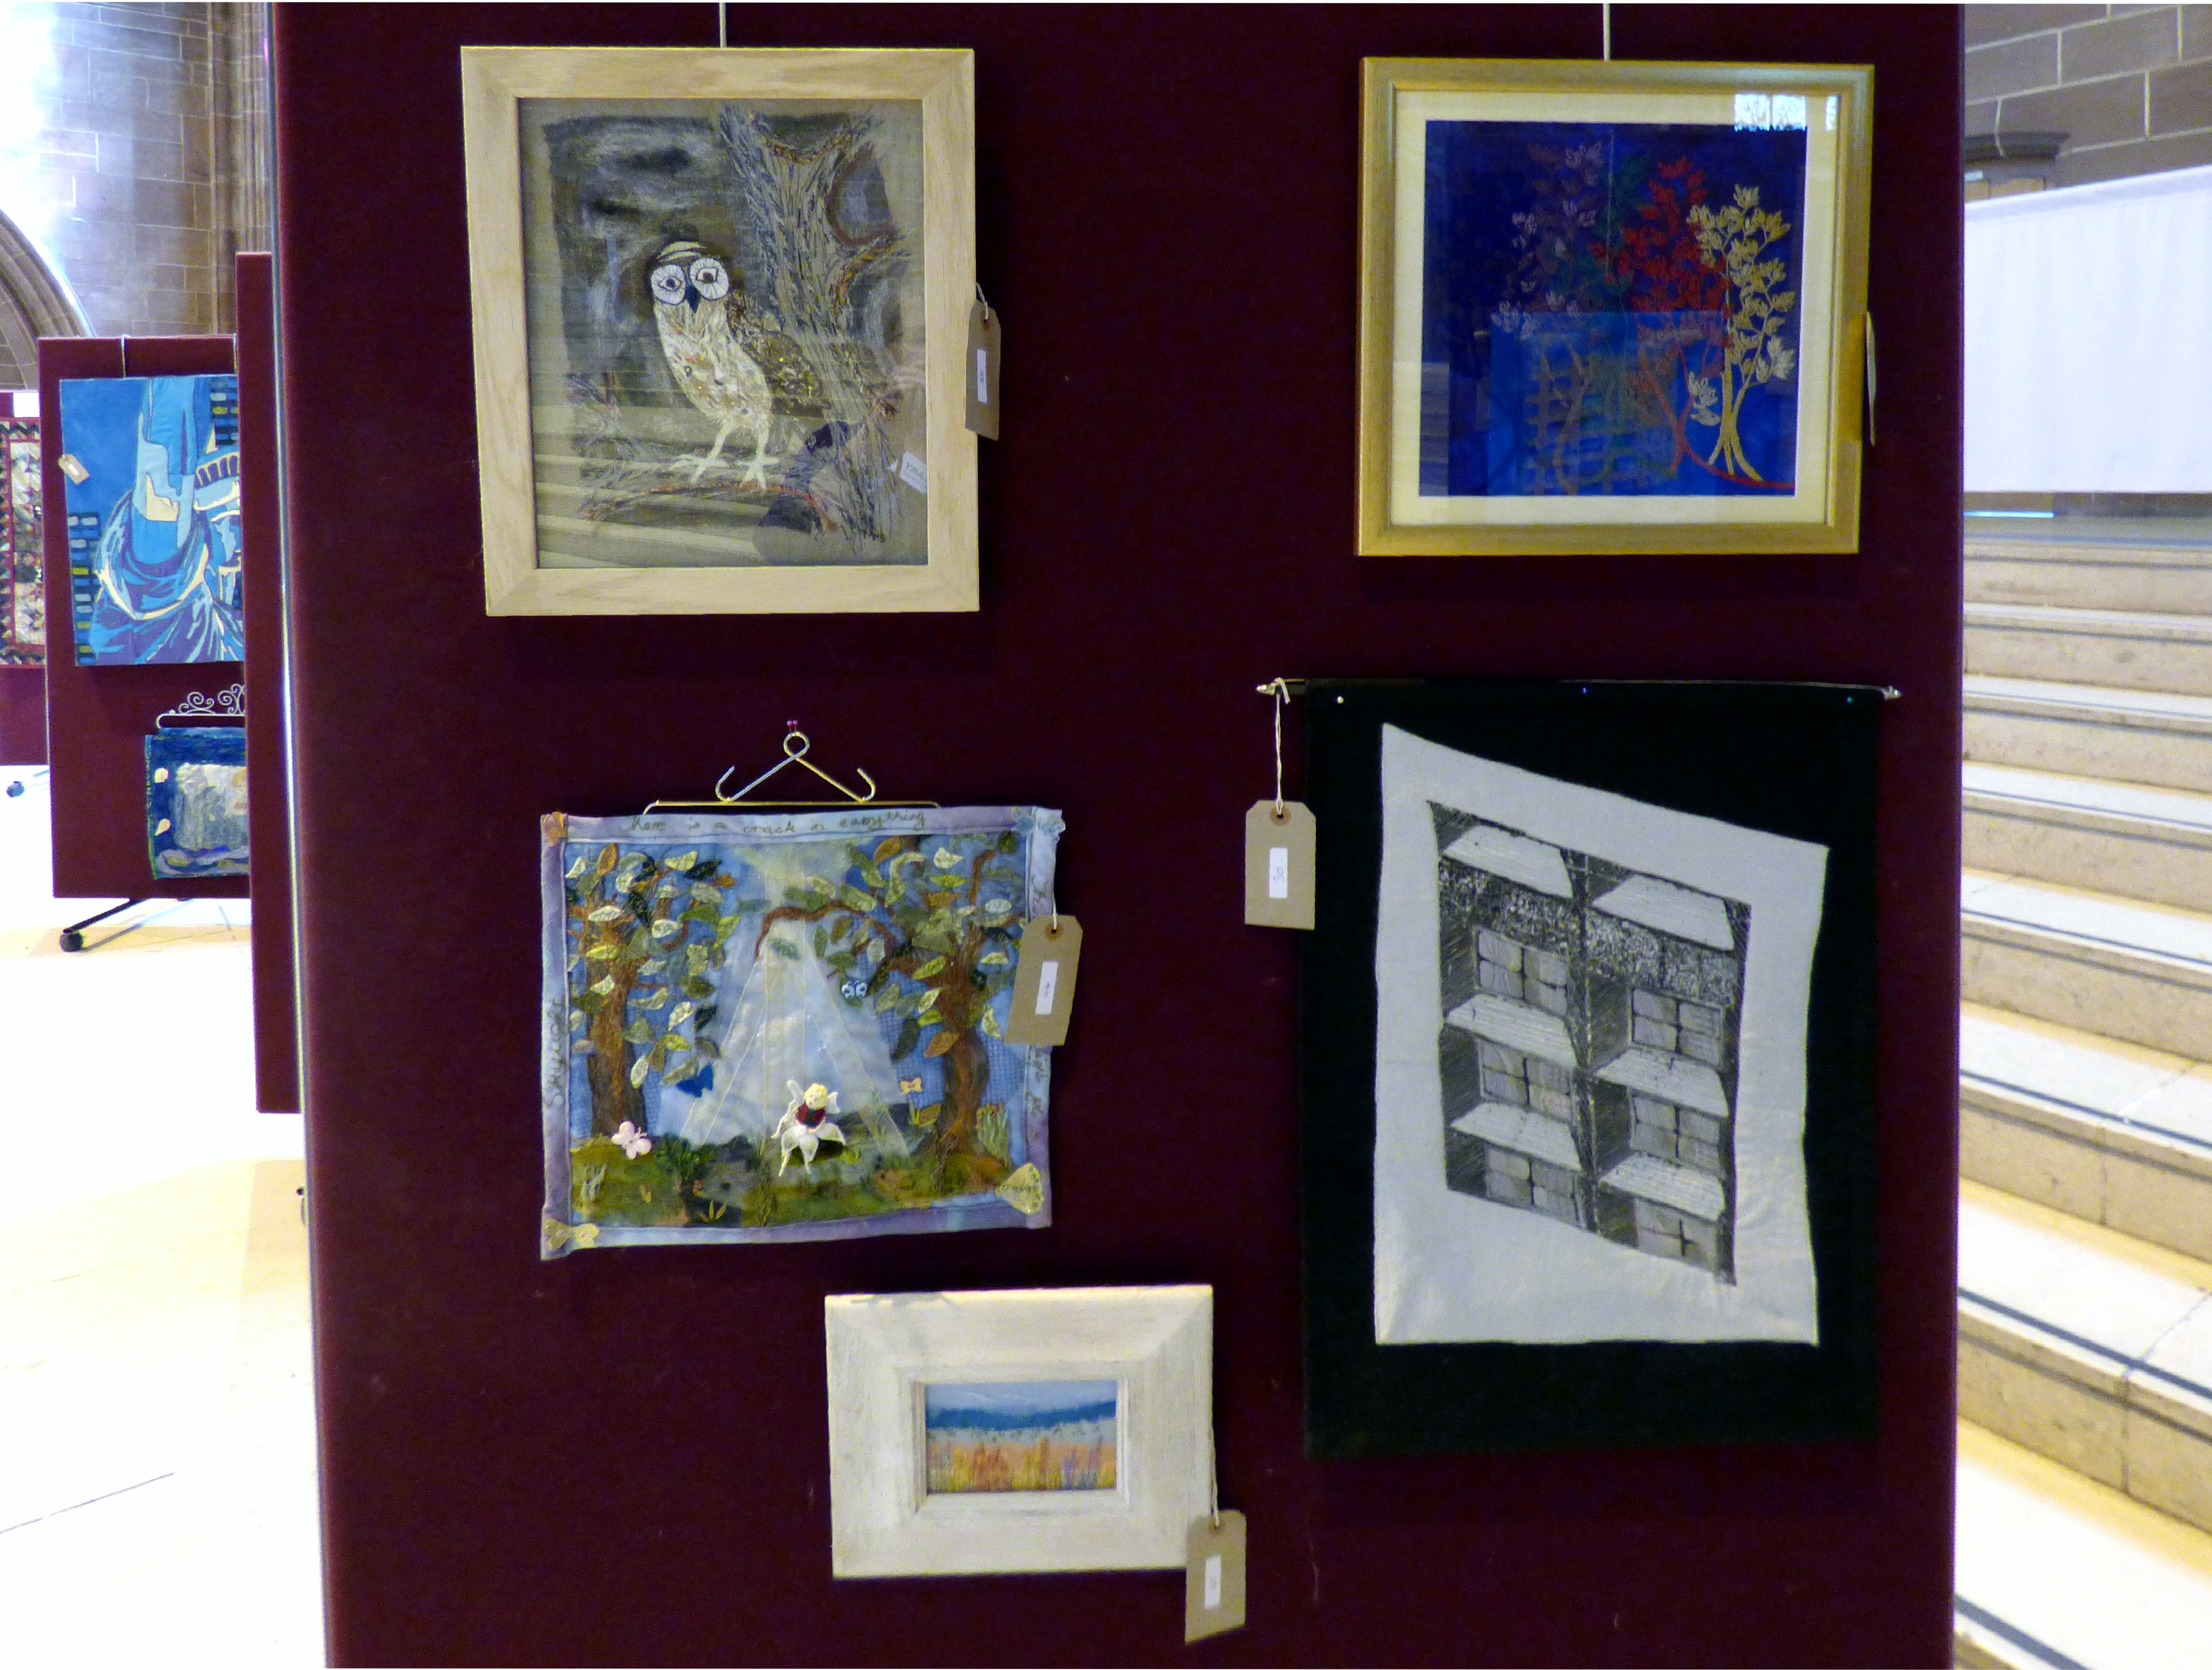 OWL FOR INDIRA by Marie Stacey, CAPABILITY BROWN by David Peglar, SKYLIGHT by Mal Ralston, COASTAL PATH by Jean Mather and Reflections by Elsie Watkins at 60 Glorious Years exhibition 2016